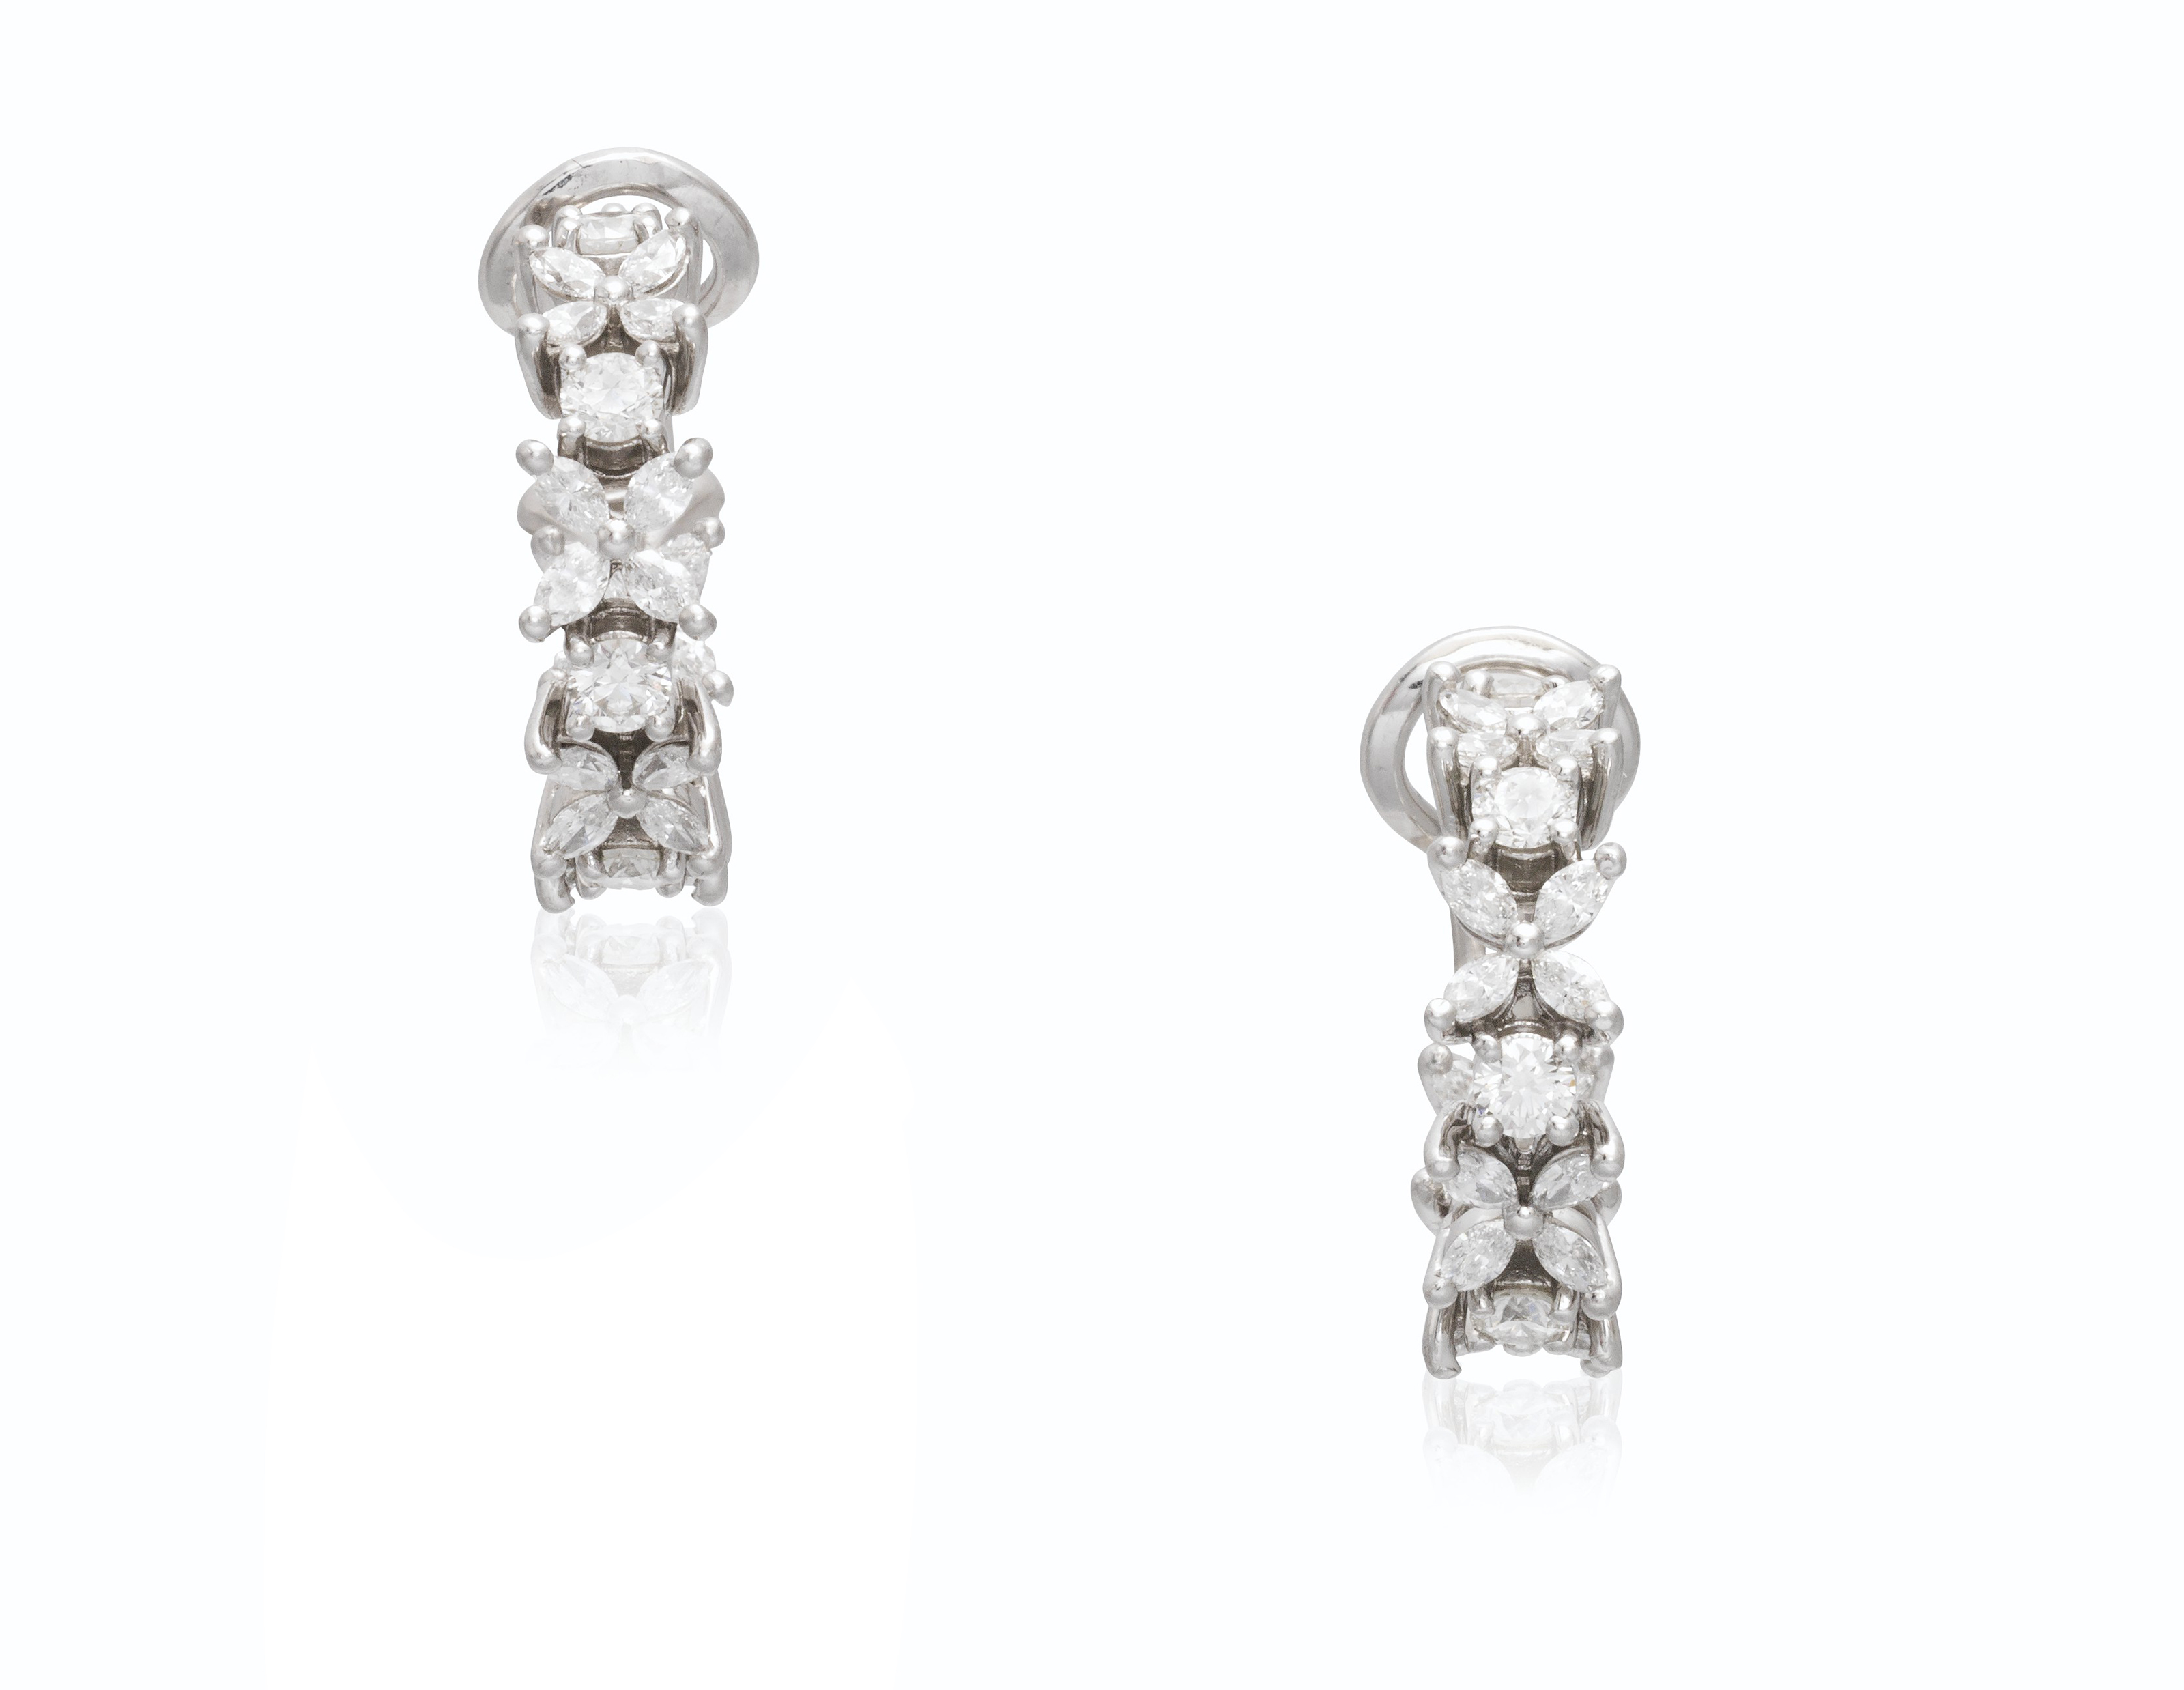 nyc diamonds antique in estate originals co earrings jewelry with antiques eric finely diamond crafted pin tiffany platinum